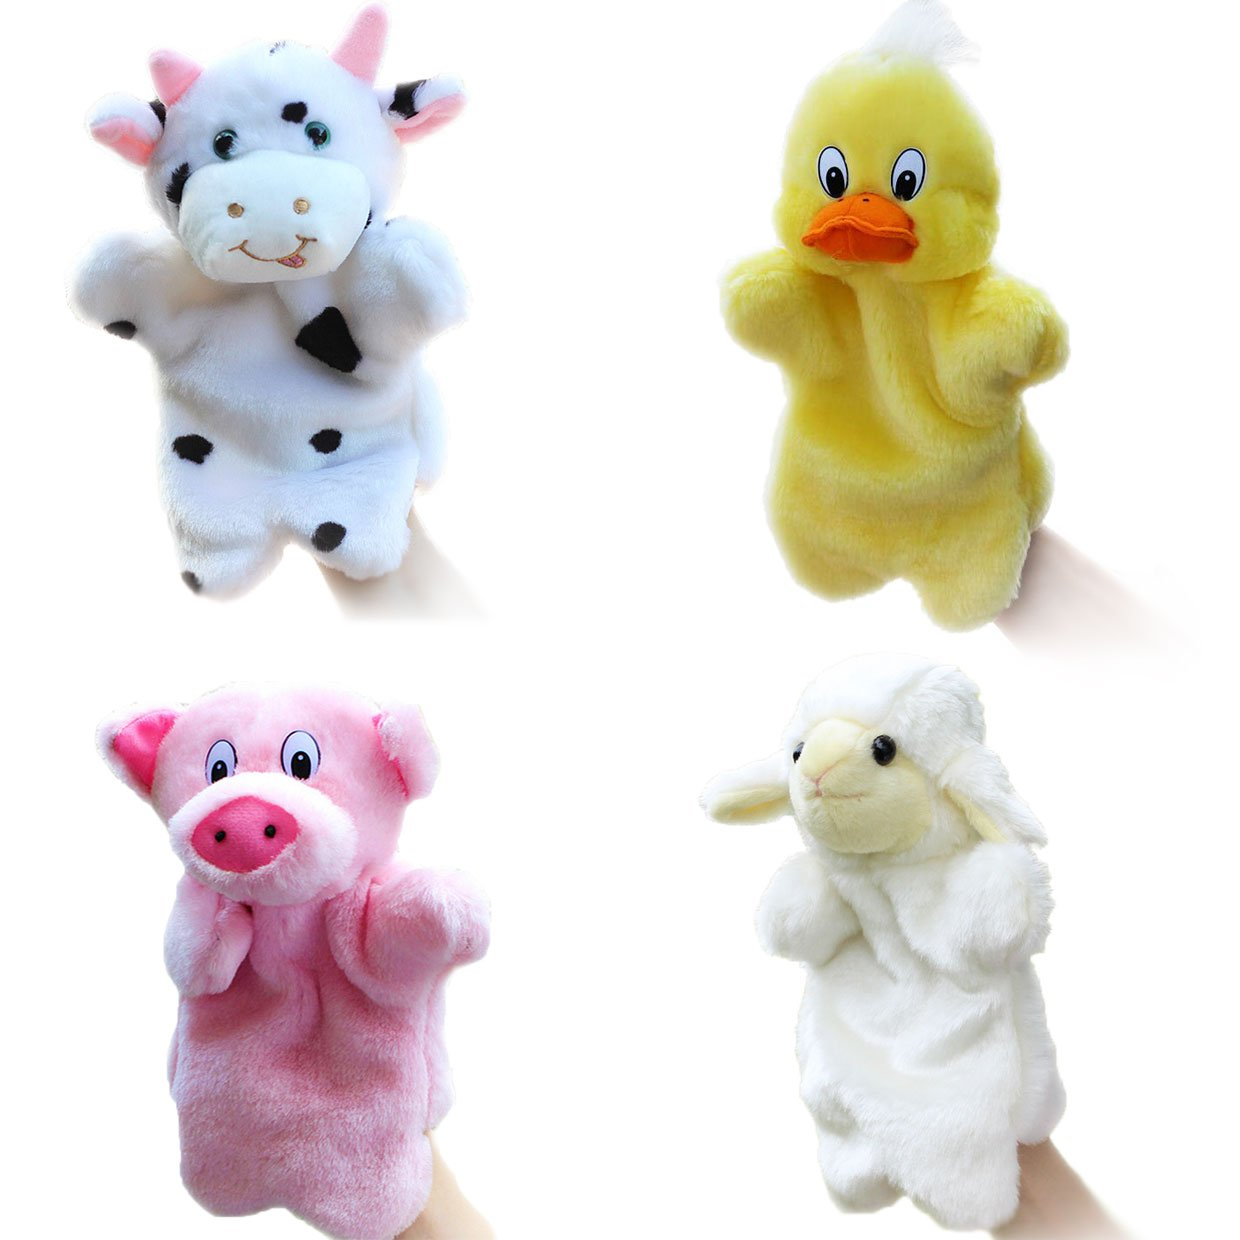 4pcs Glove Puppets Animal Hand Puppets for Kids Plush Toys Storytelling Game Props--Farm Animals